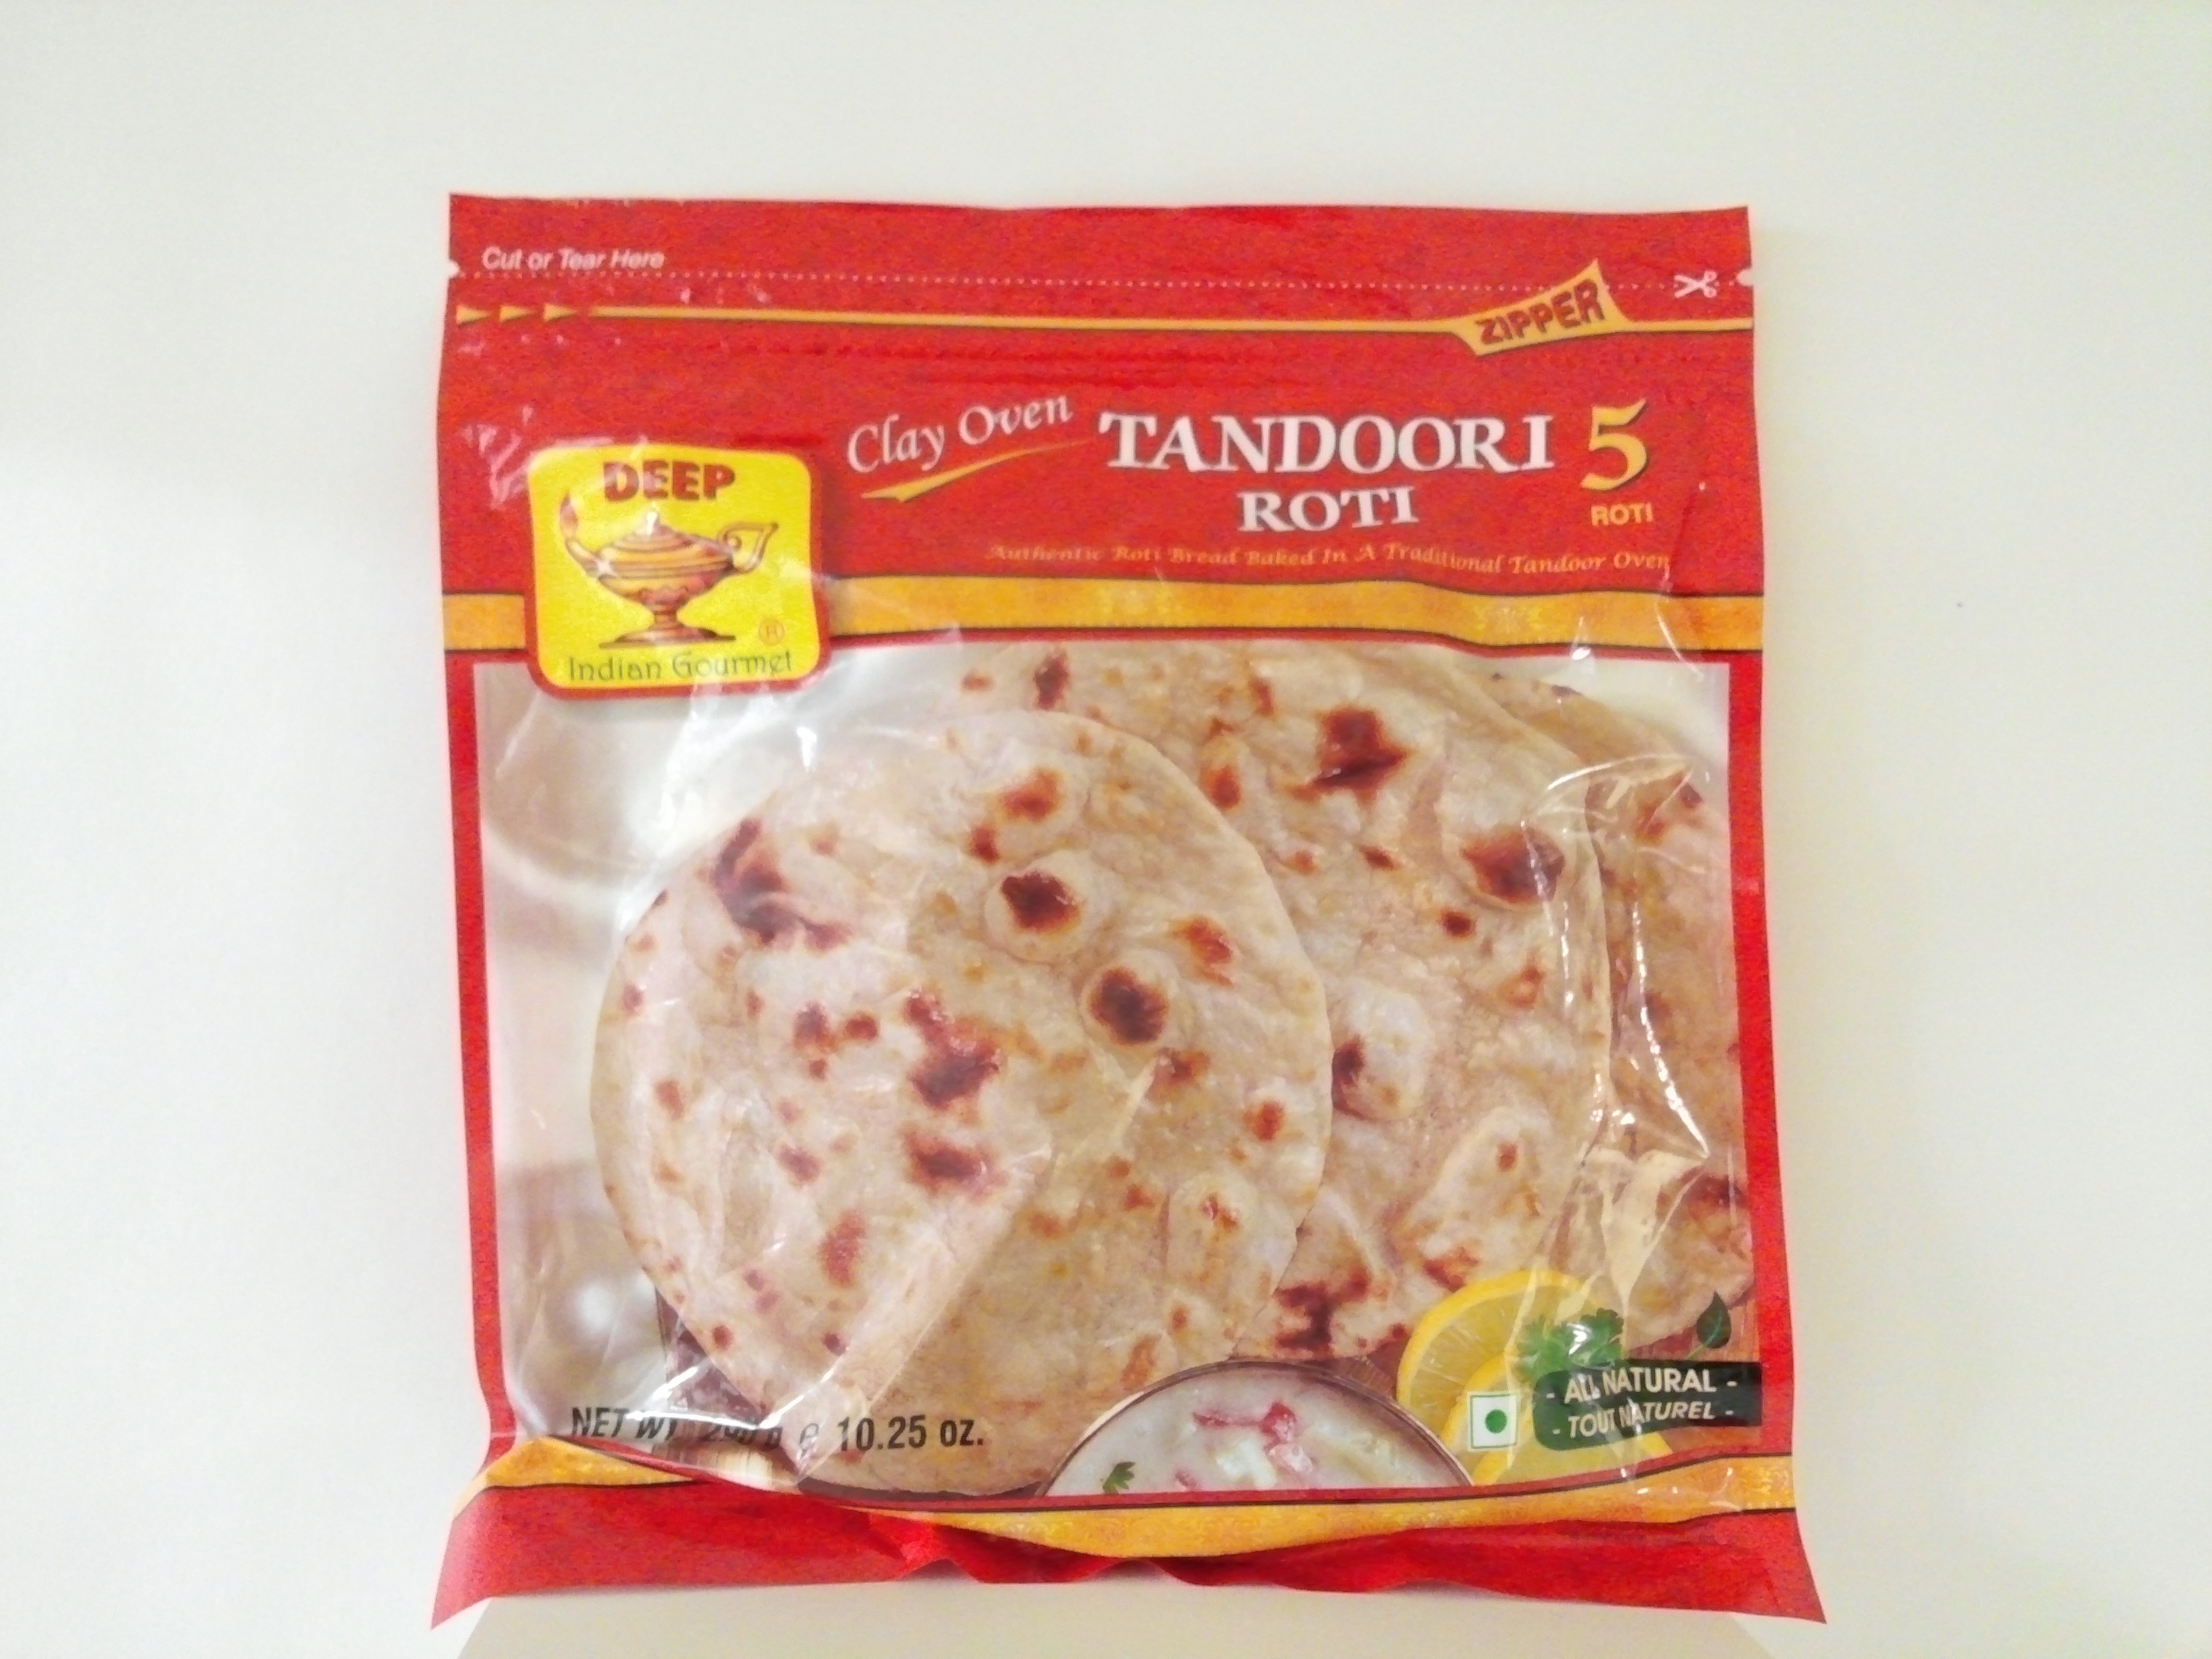 Deep Tandoori Roti 5 Pcs 10.25 oz